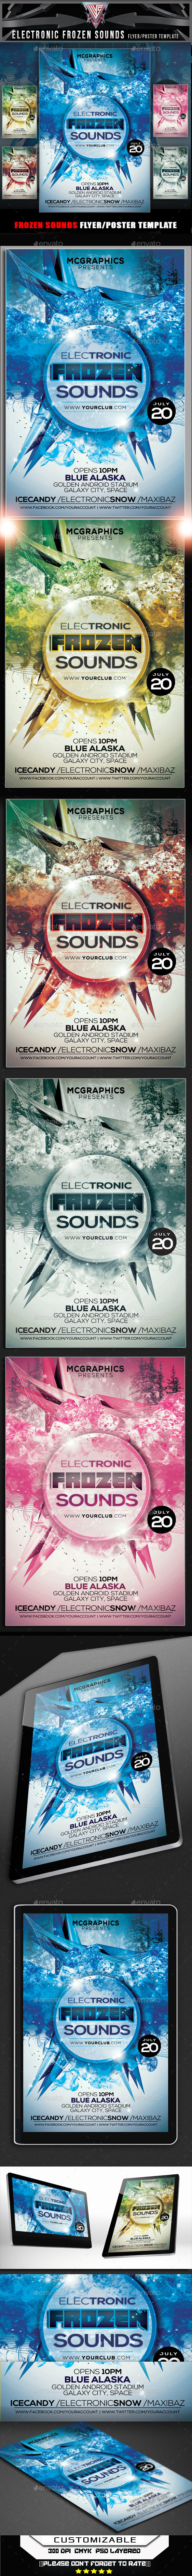 GraphicRiver Frozen Sounds Flyer Template 11959645